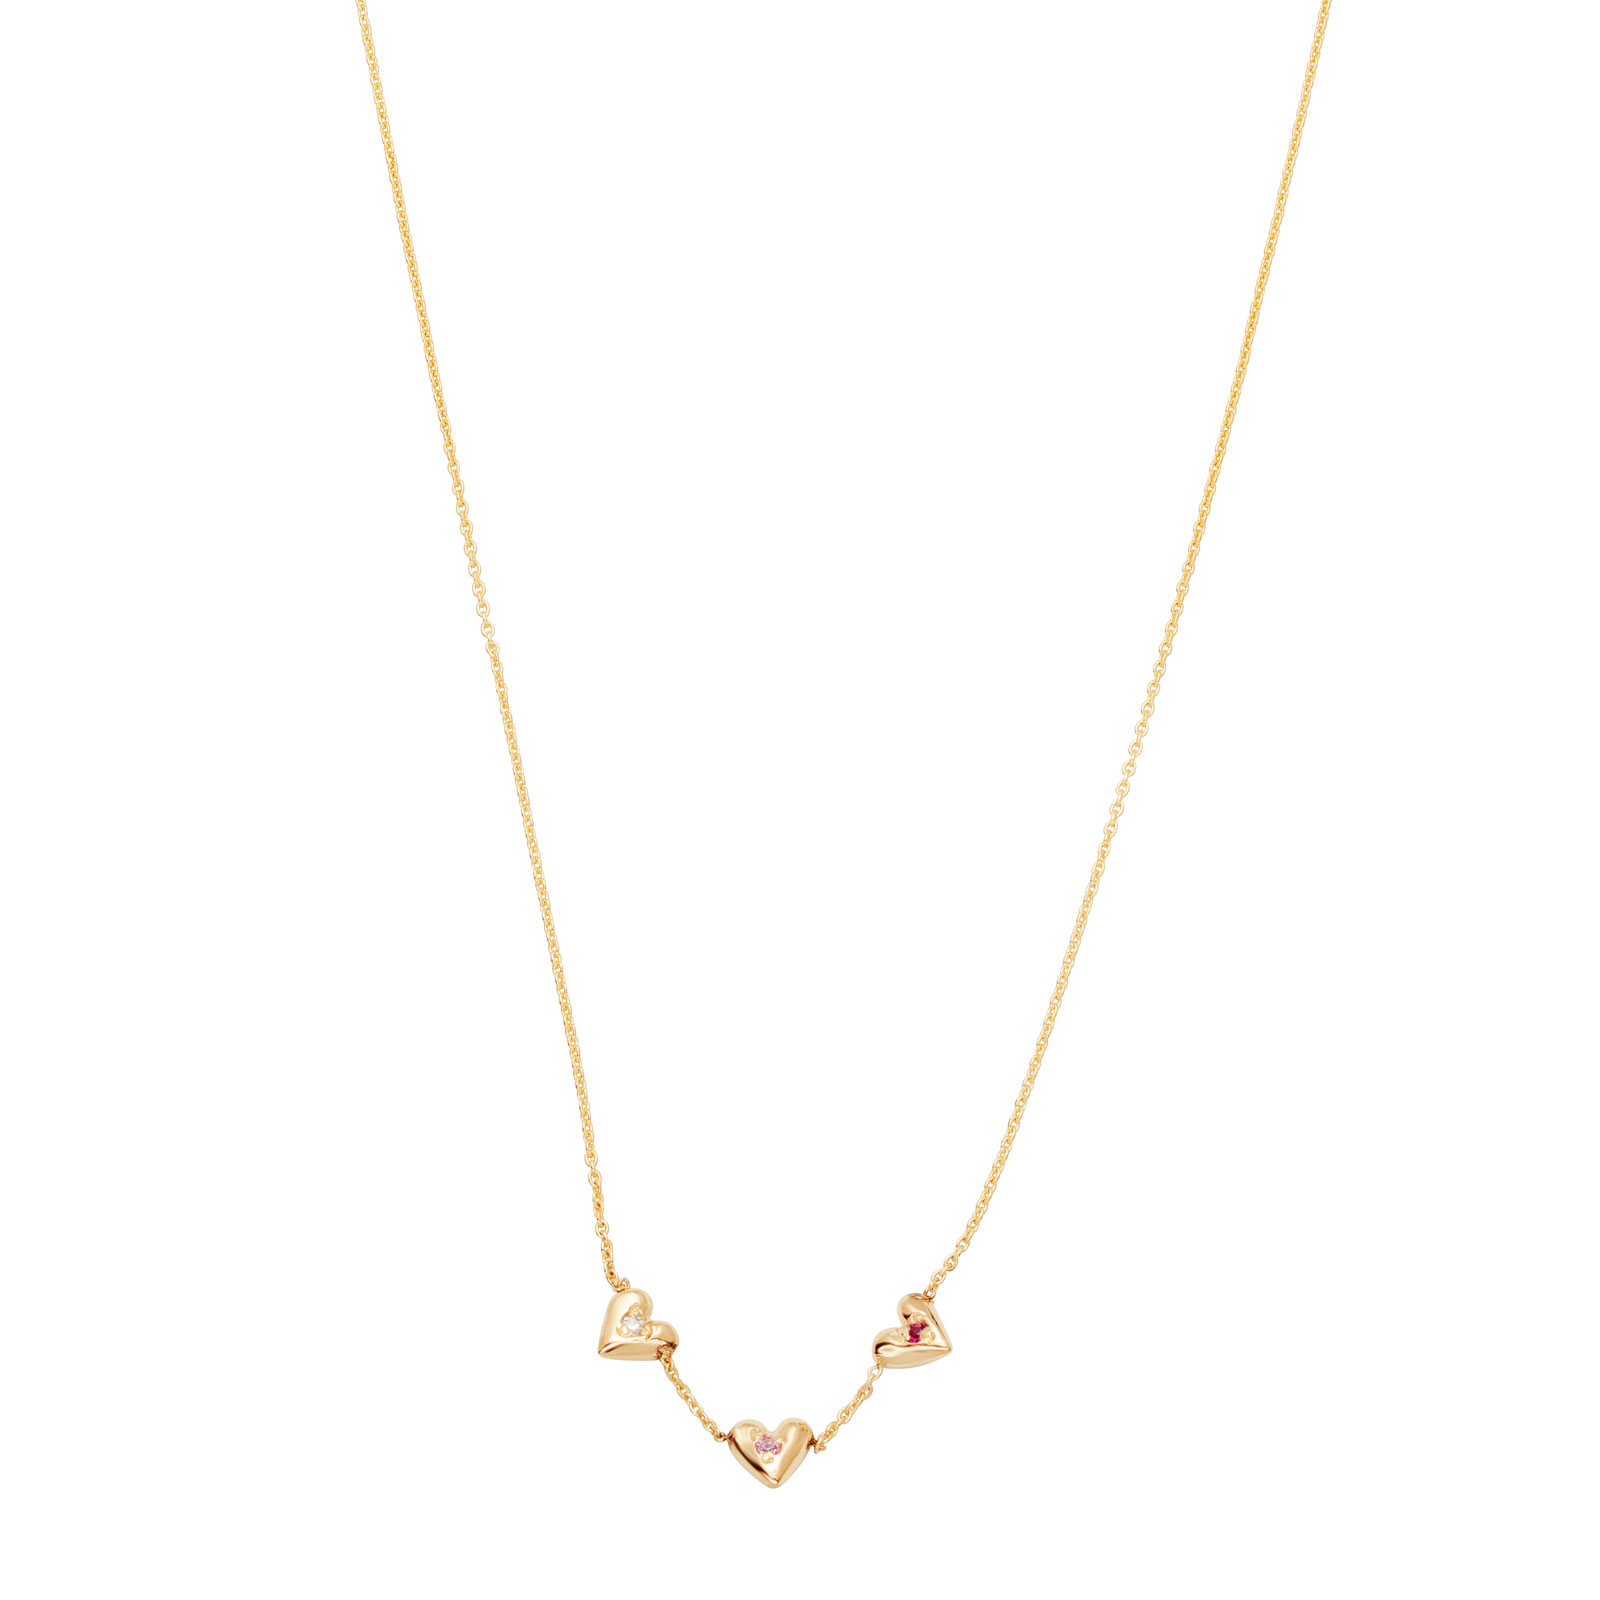 Teeny Tiny Heart Necklace - Yellow Gold